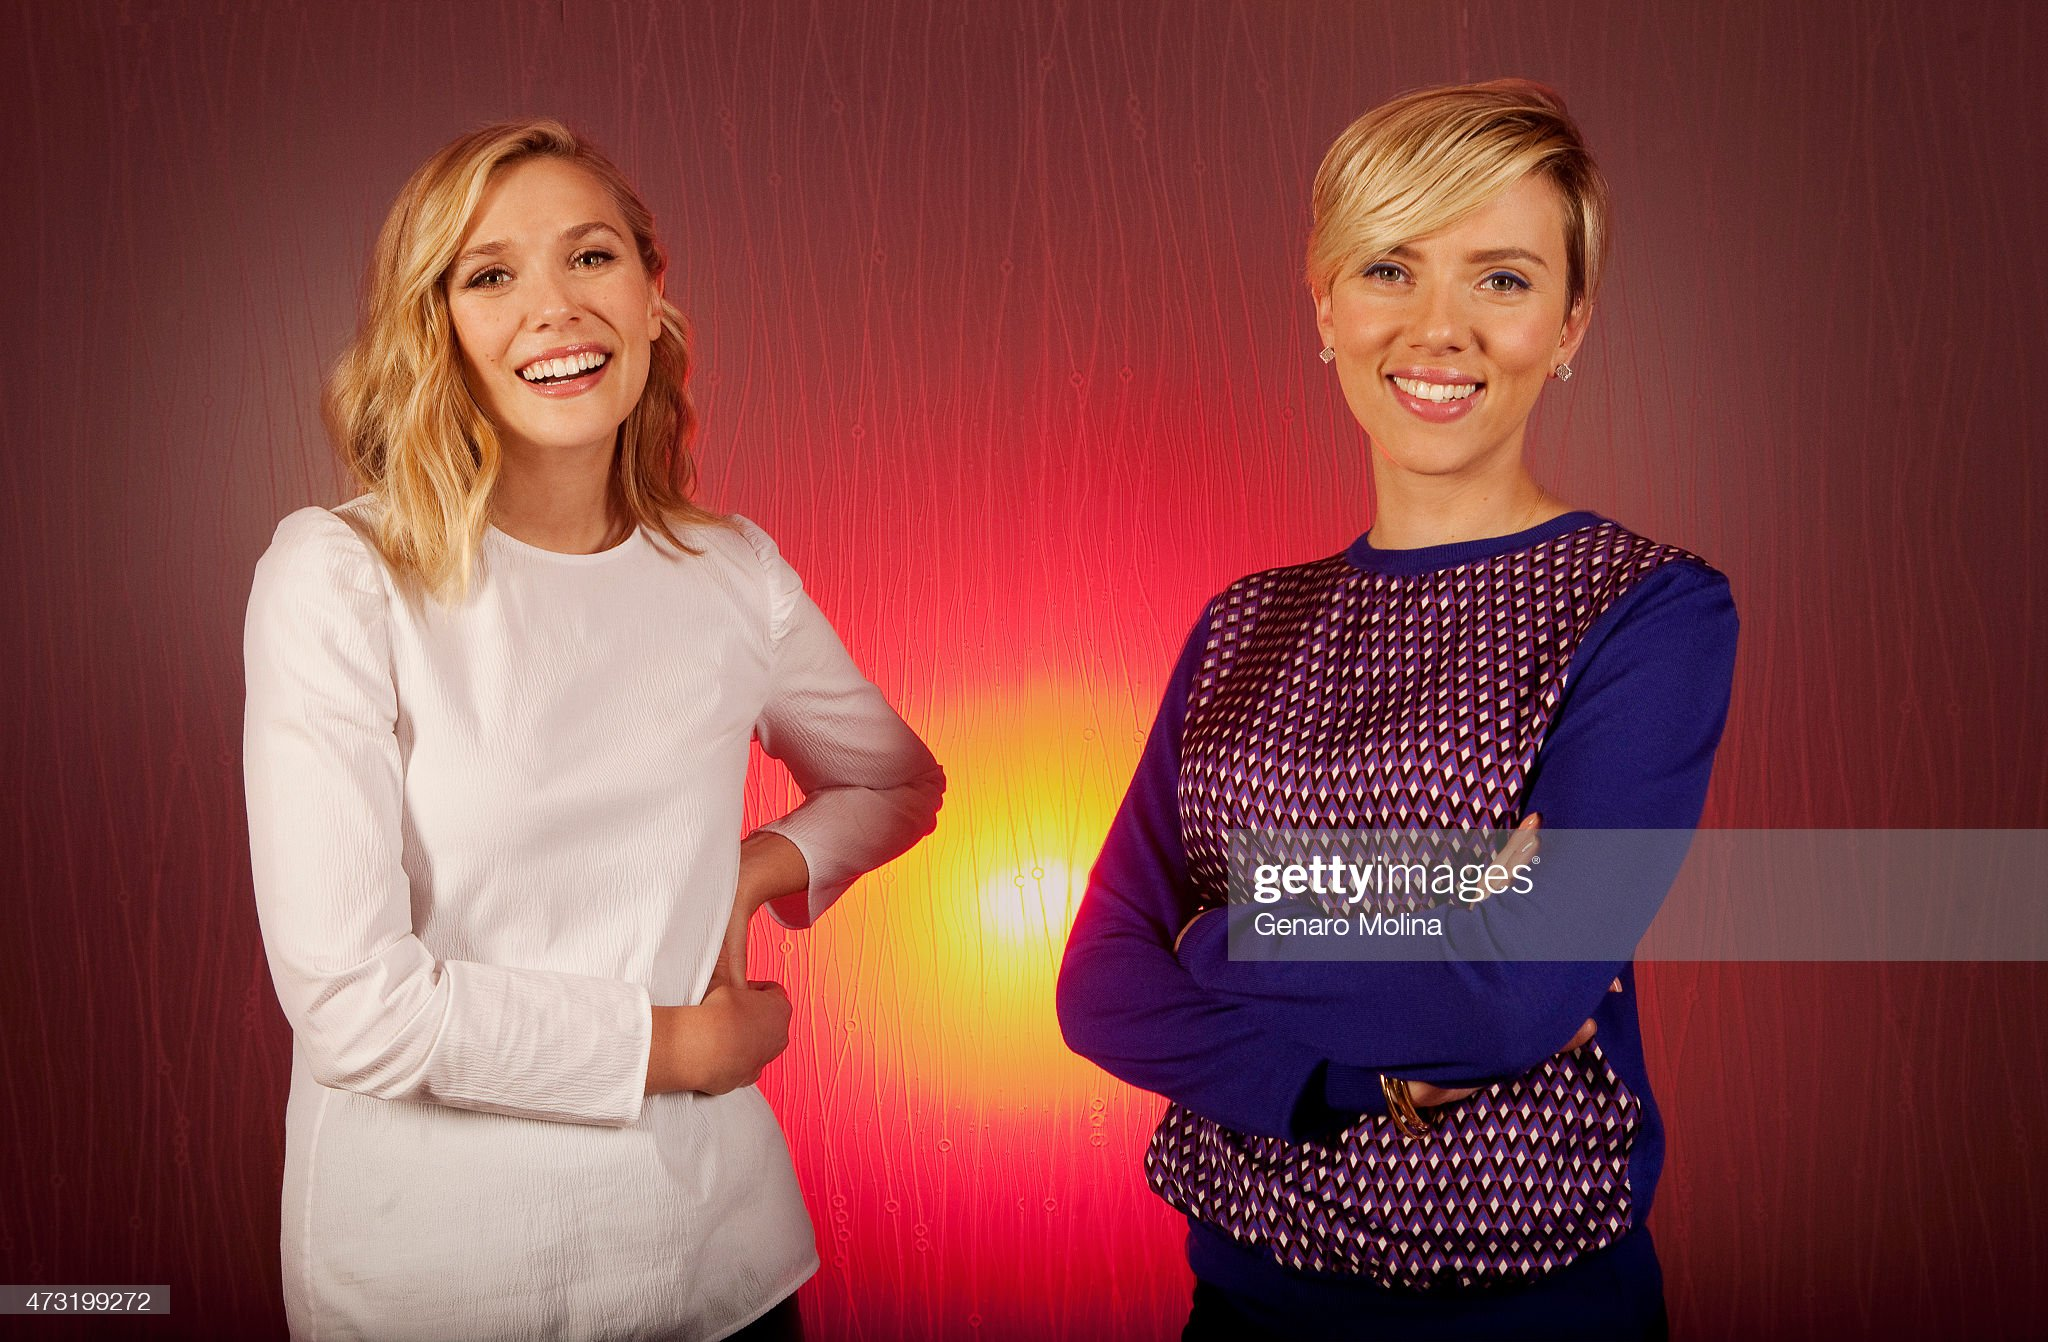 https://media.gettyimages.com/photos/actresses-scarlett-johansson-and-elizabeth-olsen-are-photographed-for-picture-id473199272?s=2048x2048